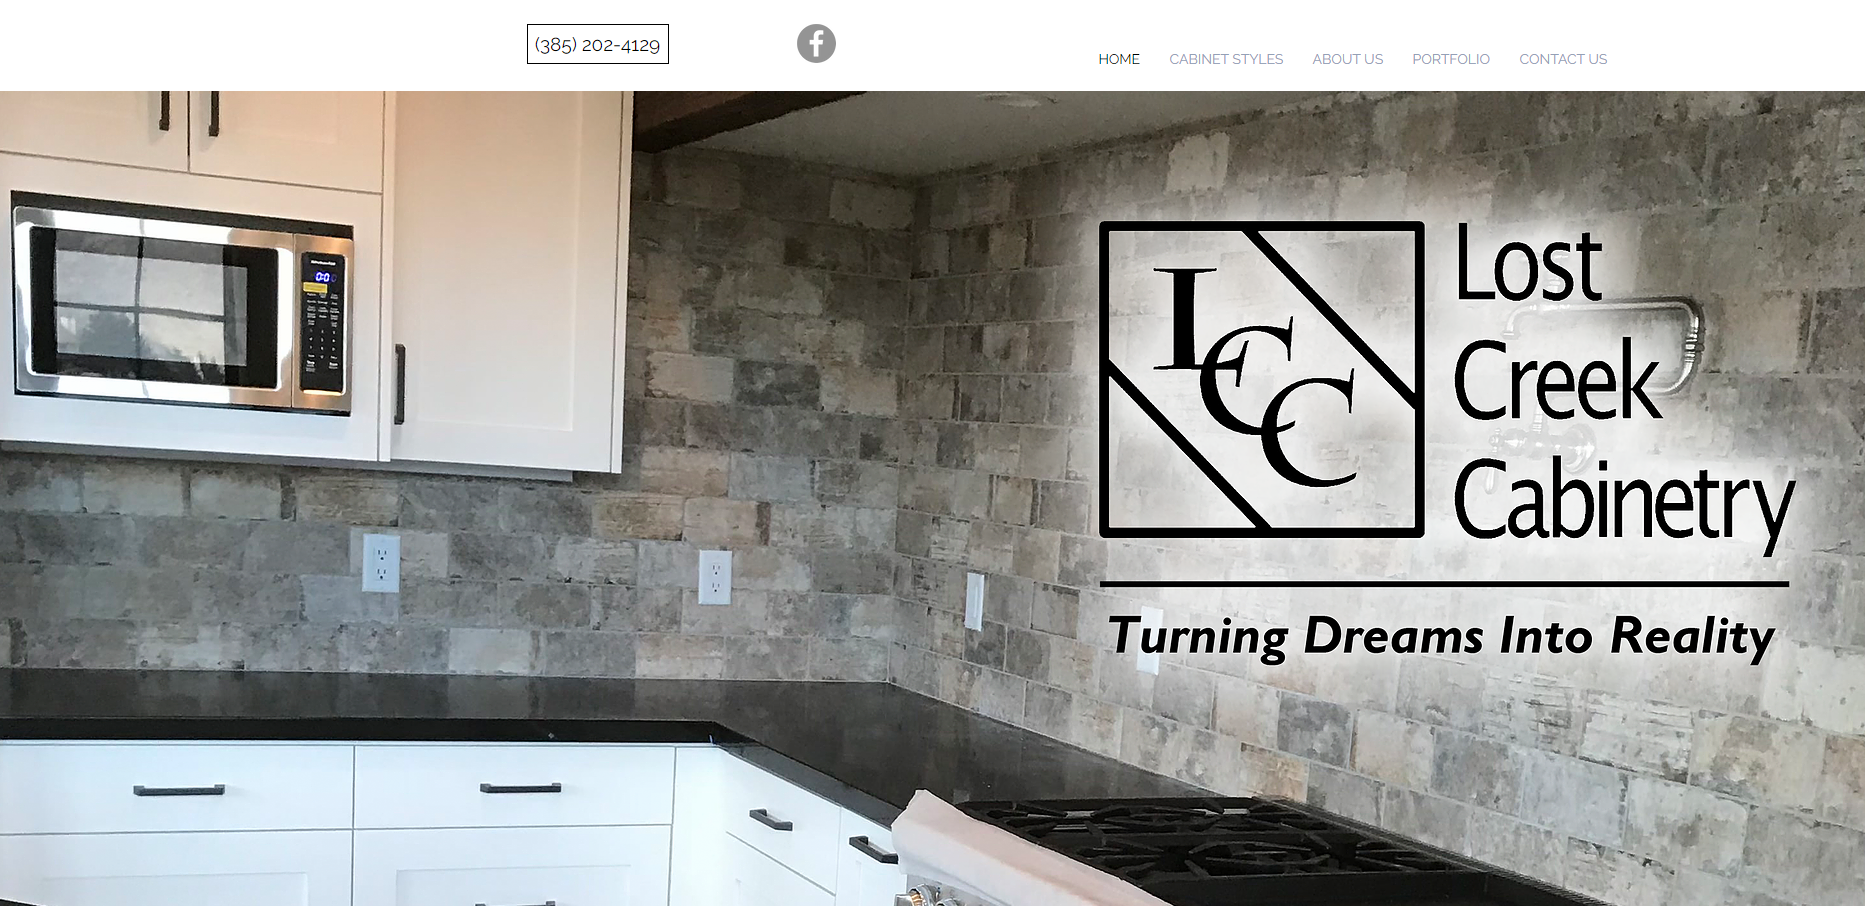 Lost Creek Cabinetry Home Page Snapshot